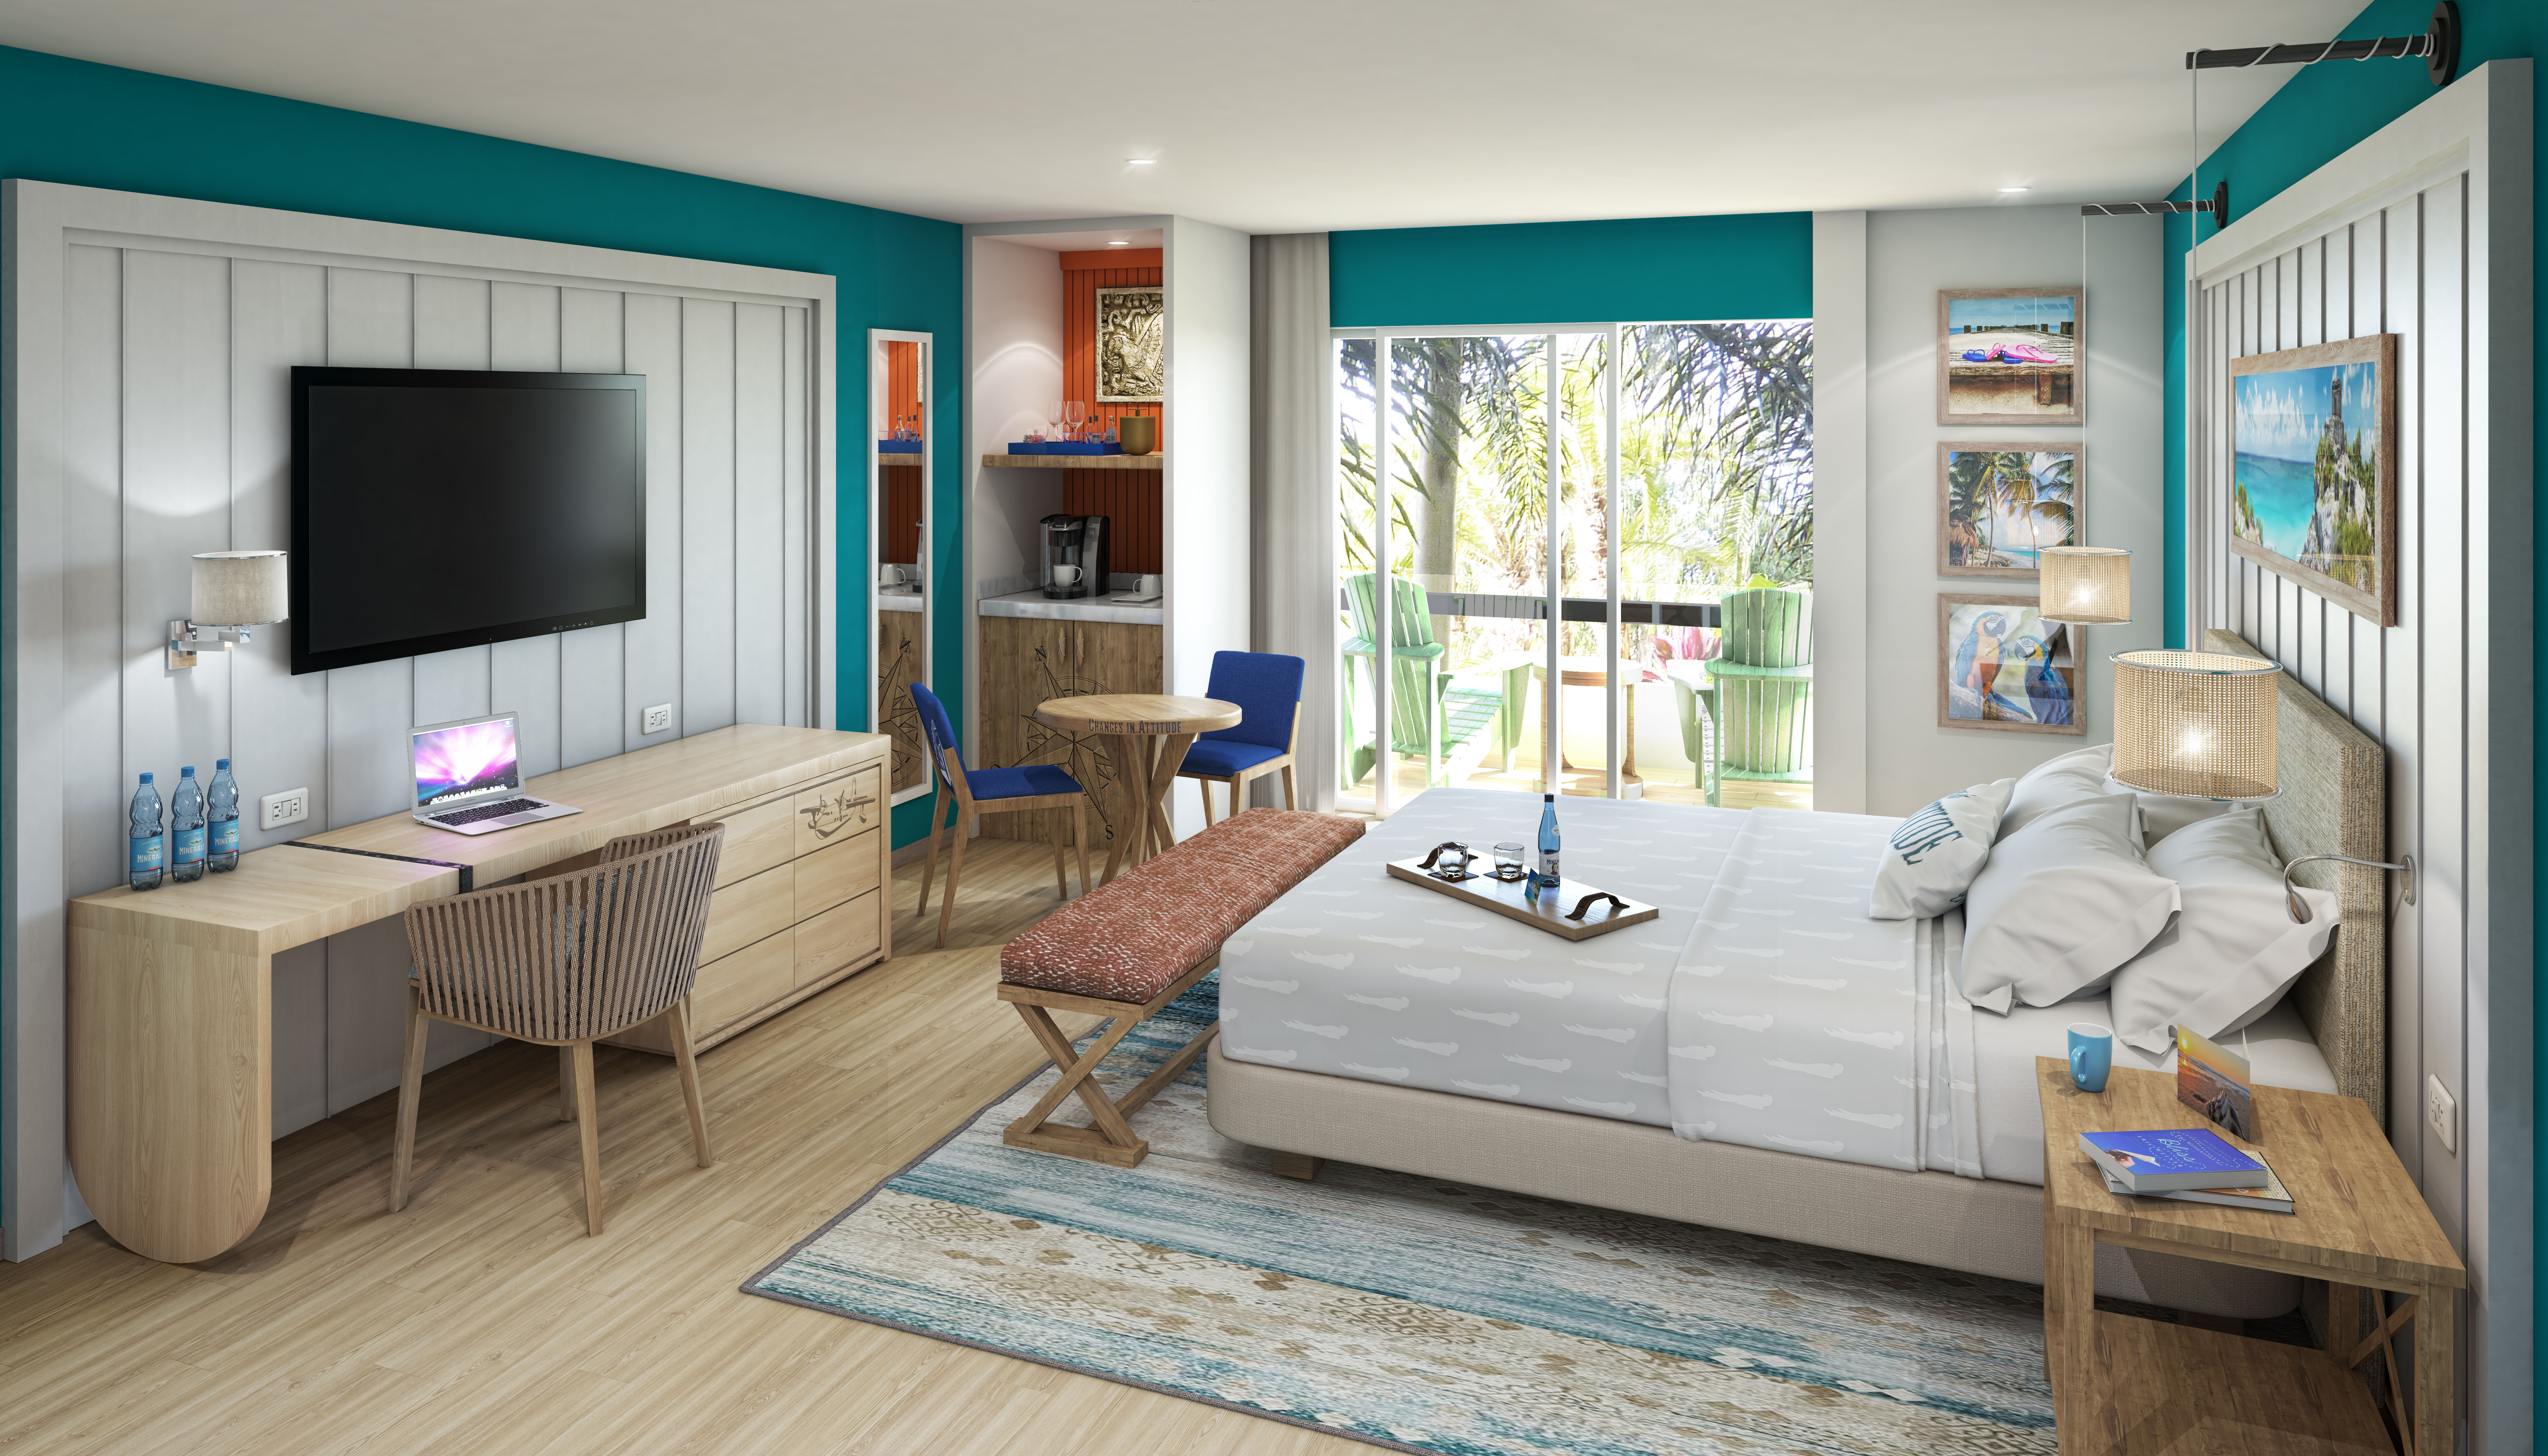 Showing slide 1 of 3 in image gallery, Paradise Junior Suite - artist rendering